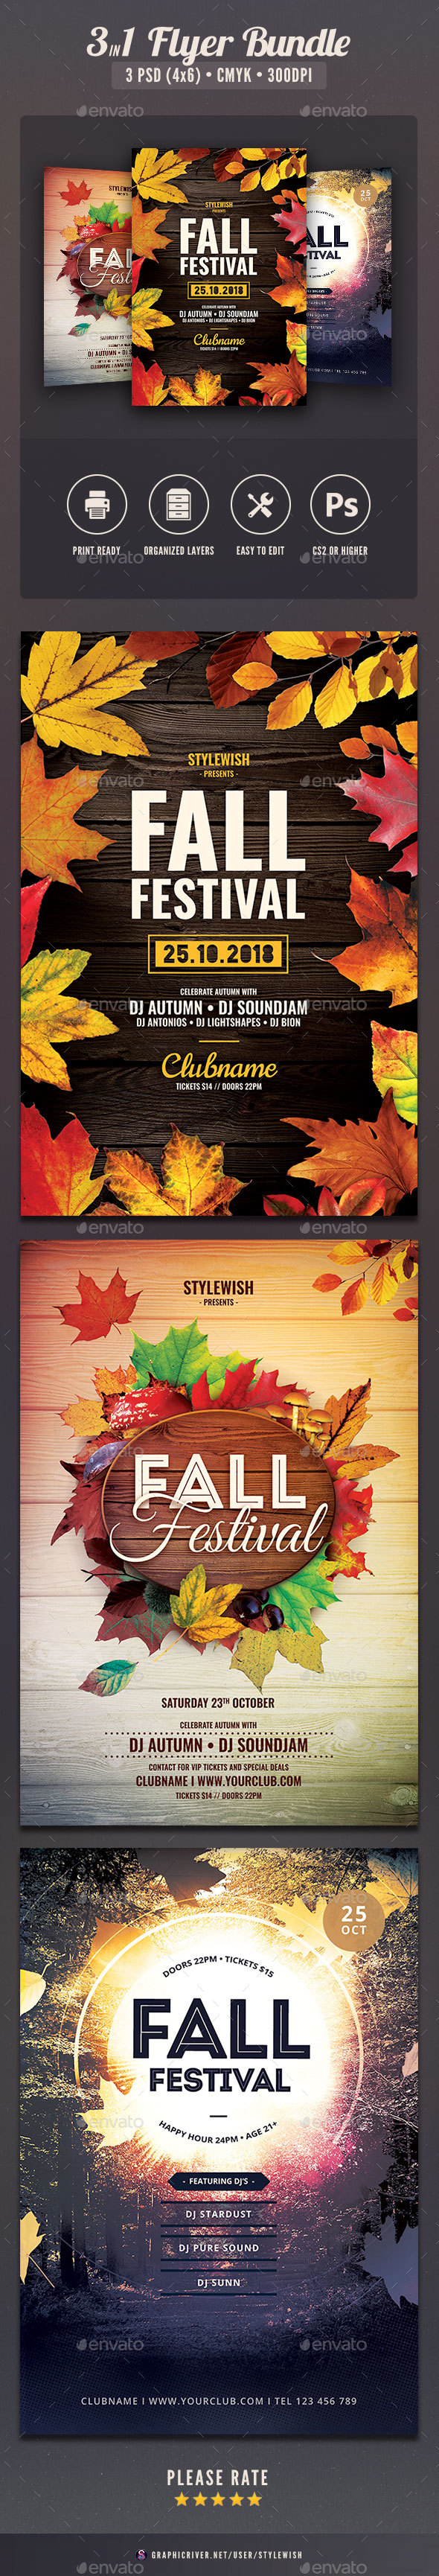 Fall Festival Flyer Bundle - Clubs & Parties Events